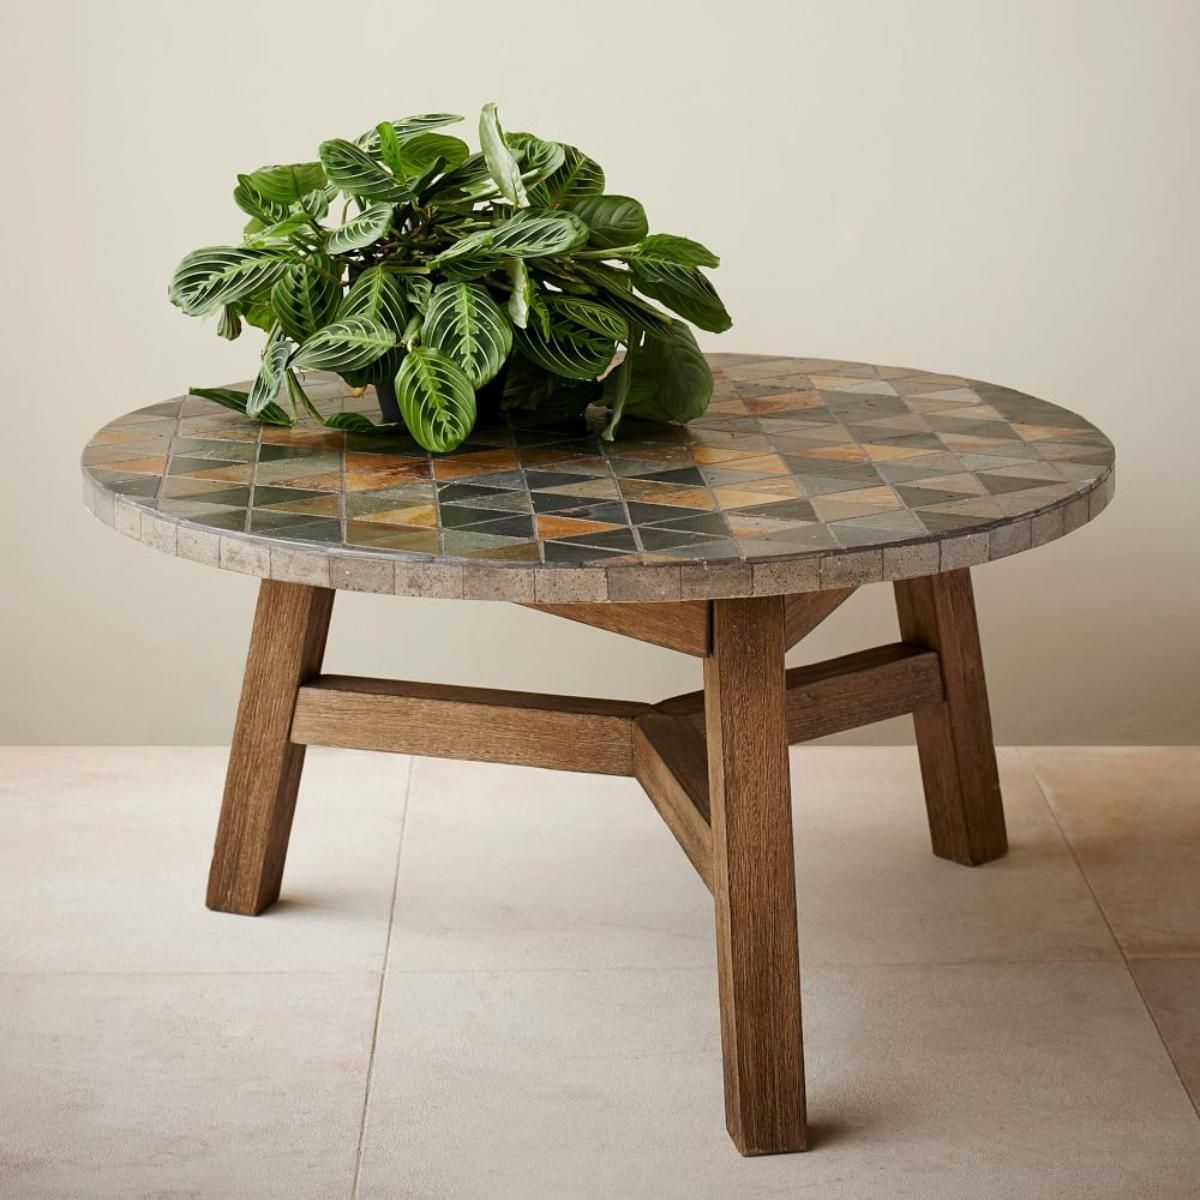 44++ West elm mosaic tiled outdoor coffee table inspirations